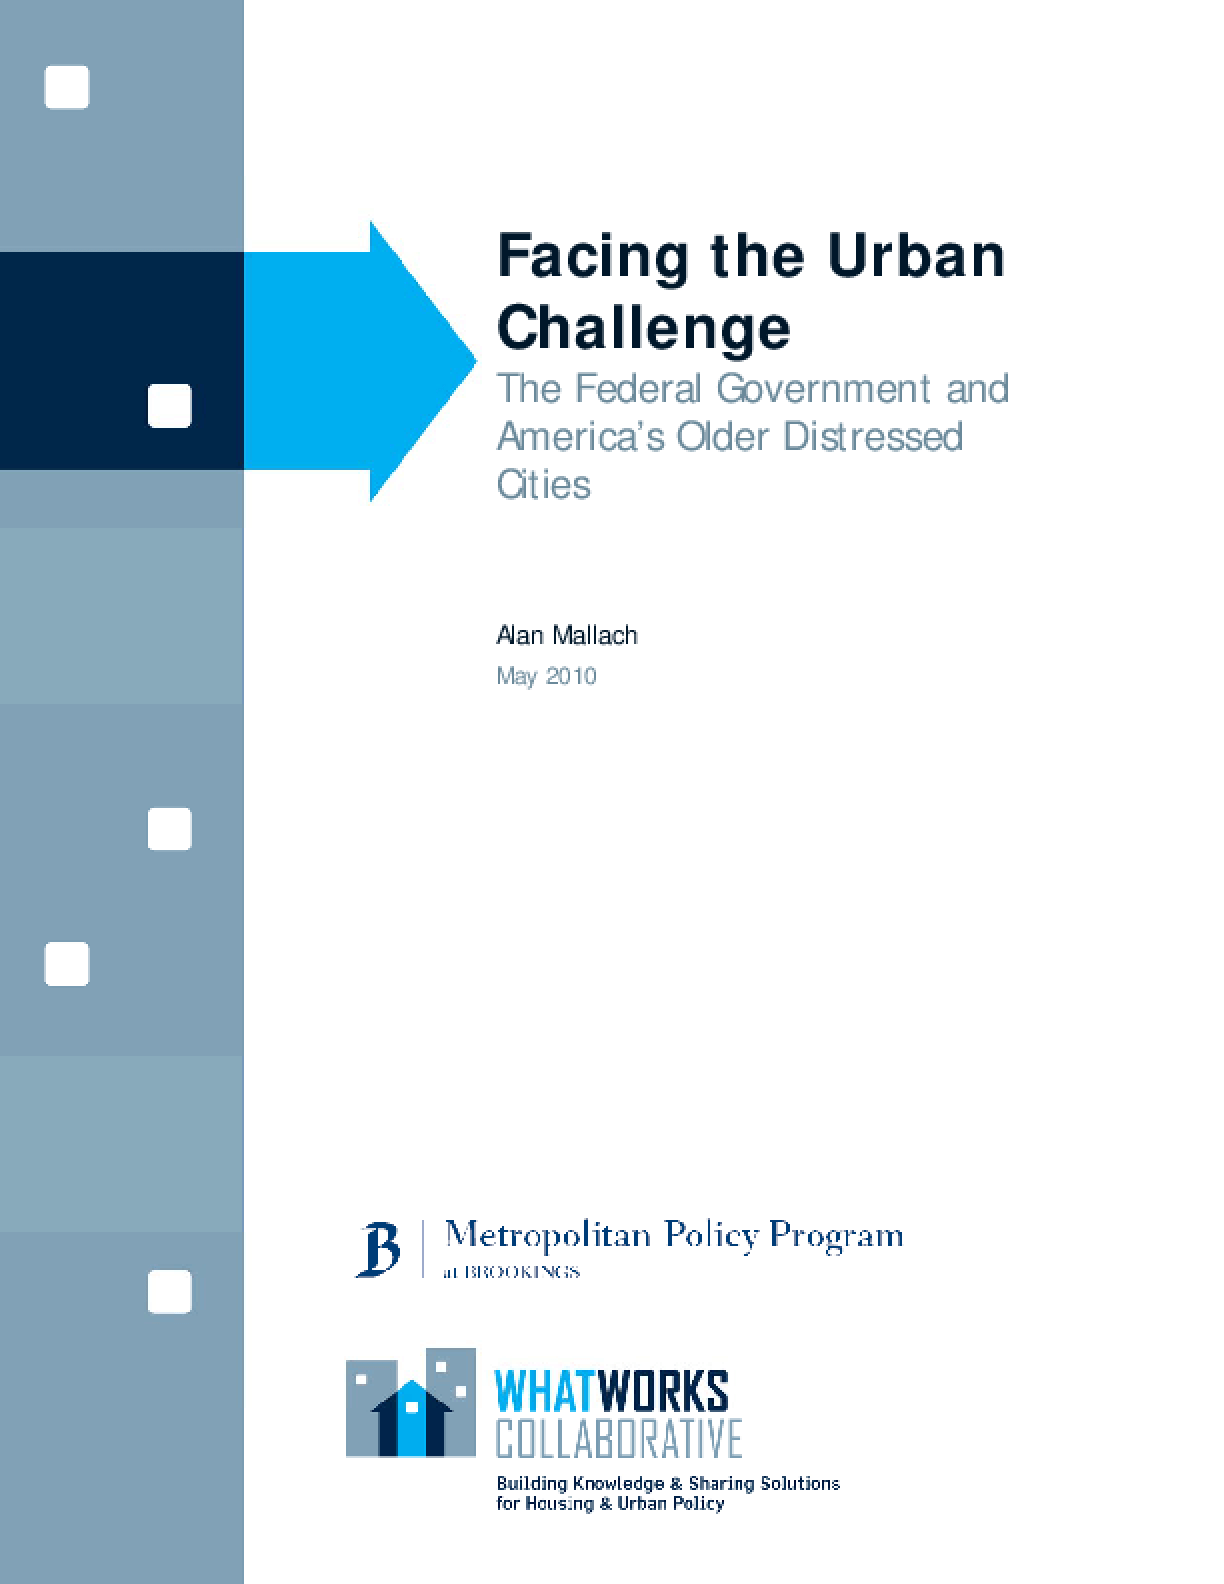 Facing the Urban Challenge: The Federal Government and America's Older Distressed Cities -- The Federal Policy Role